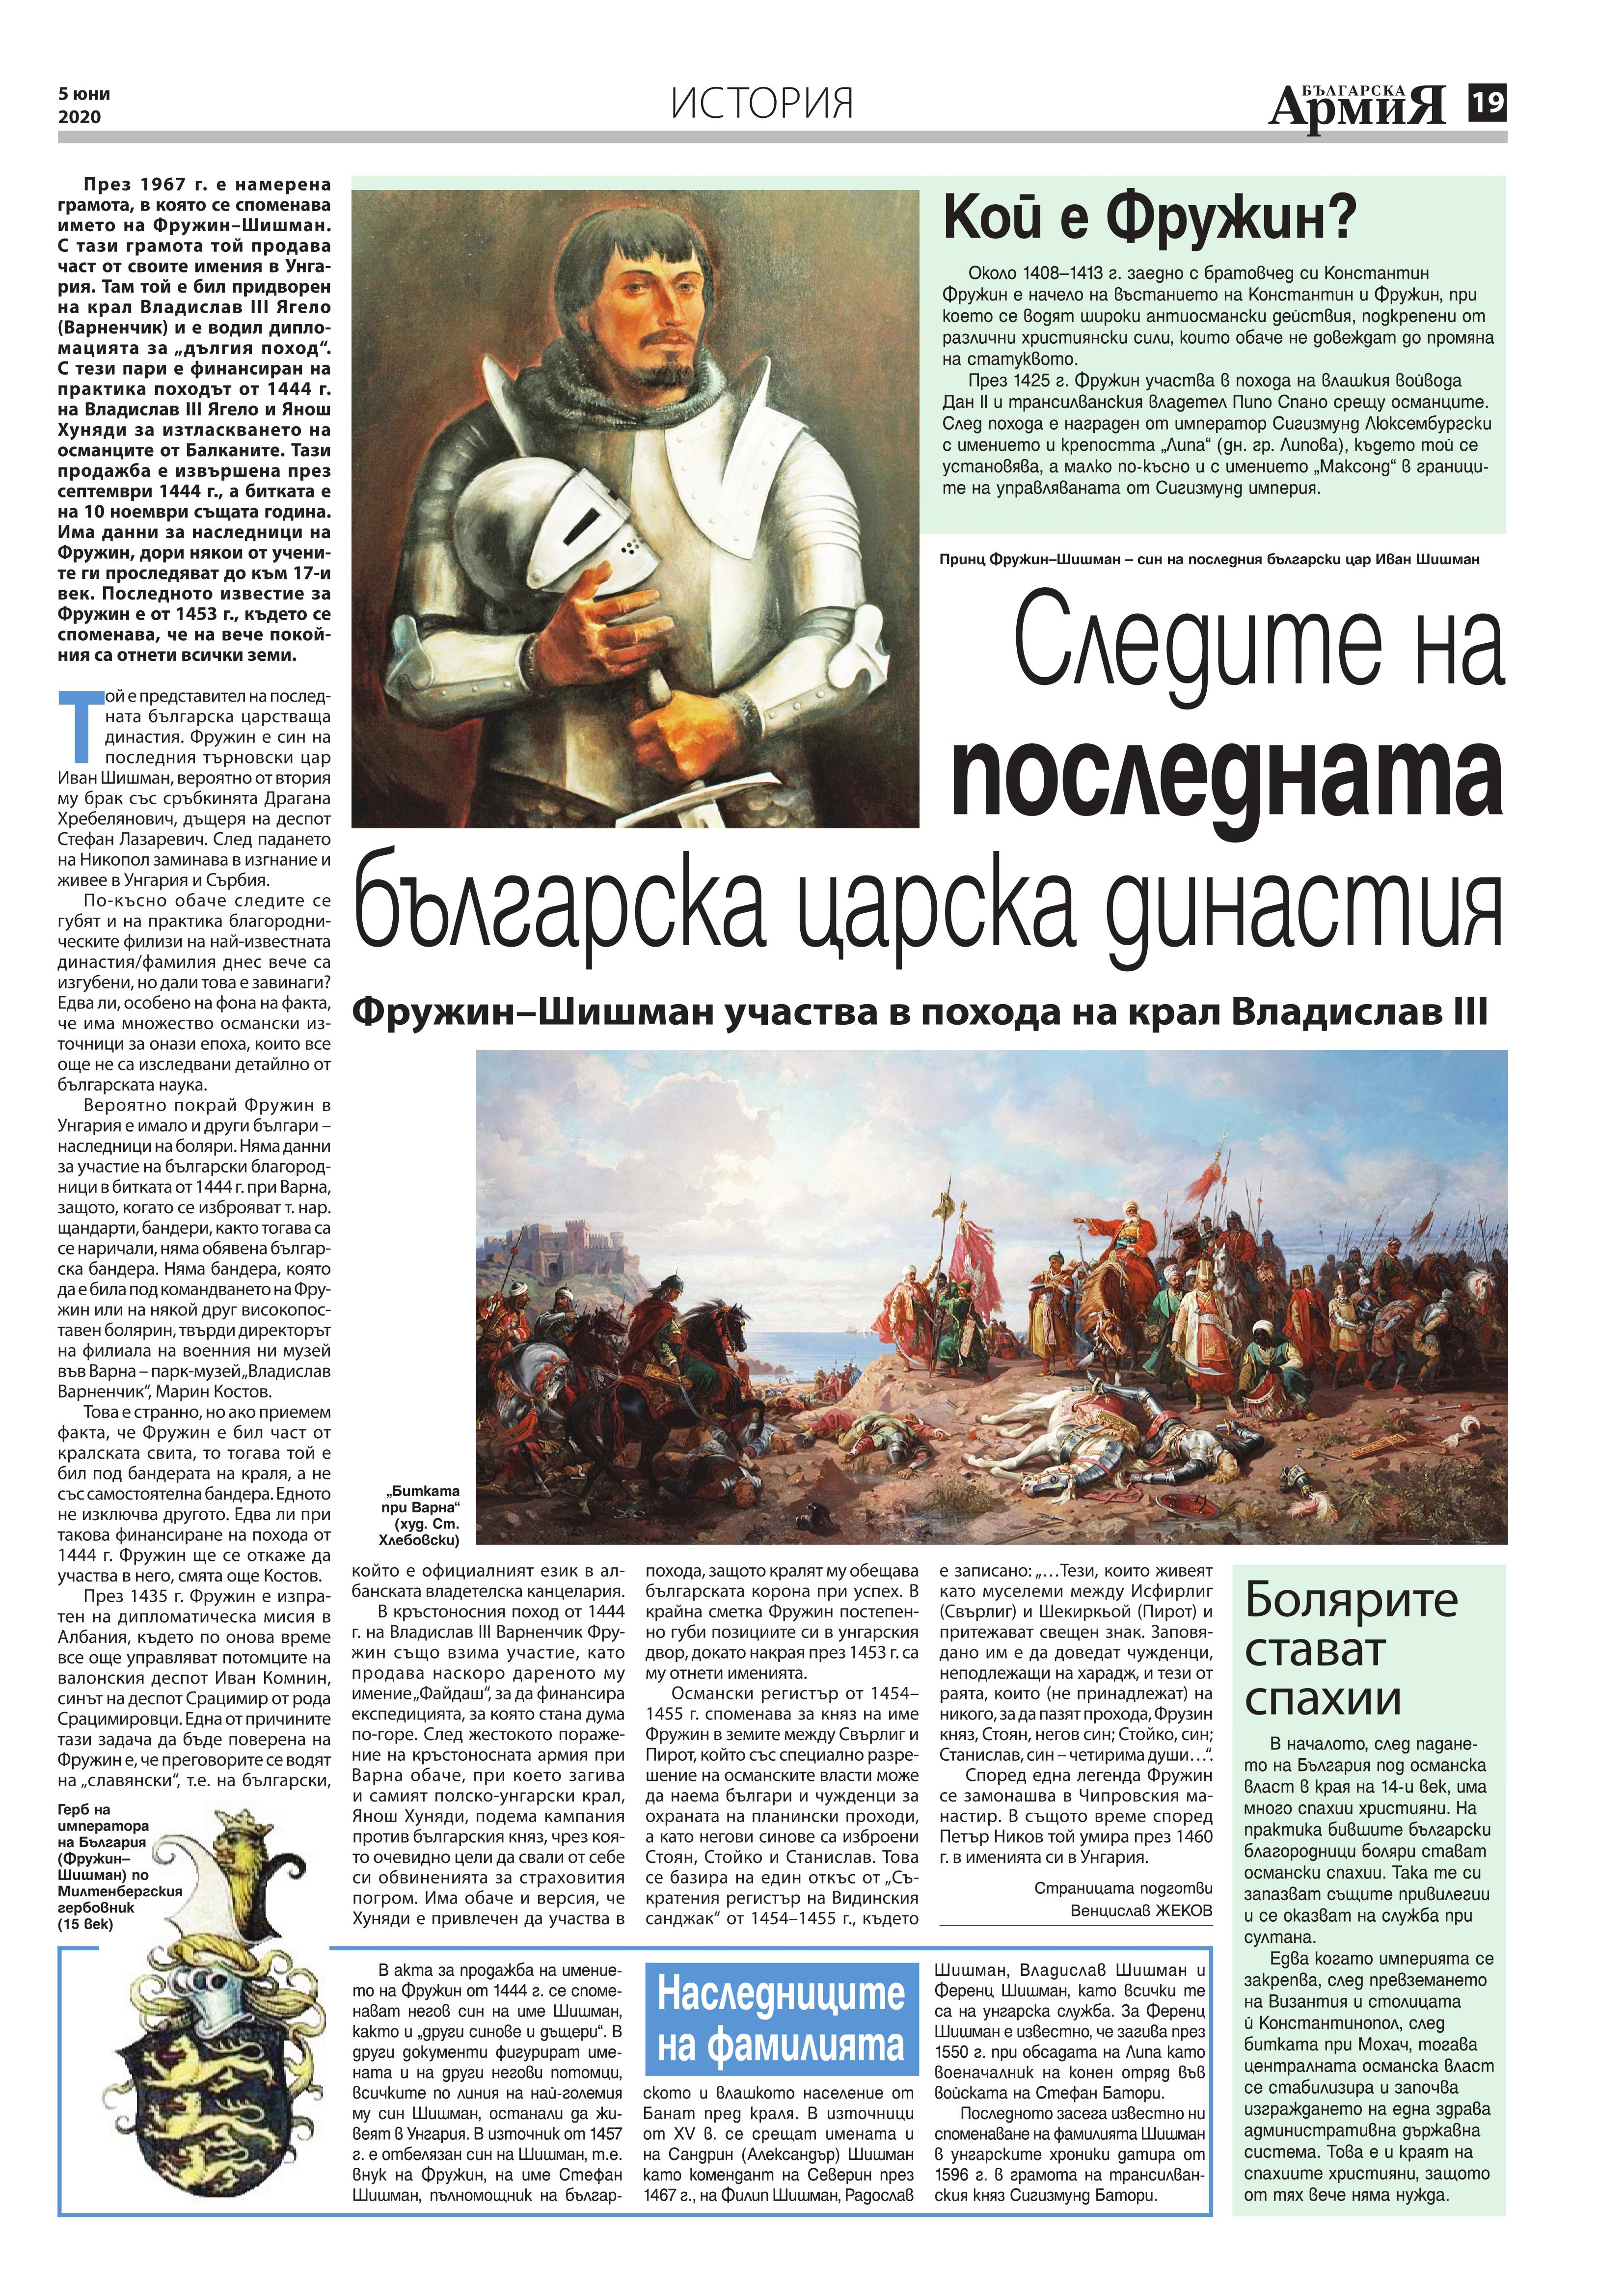 https://armymedia.bg/wp-content/uploads/2015/06/19.page1_-143.jpg